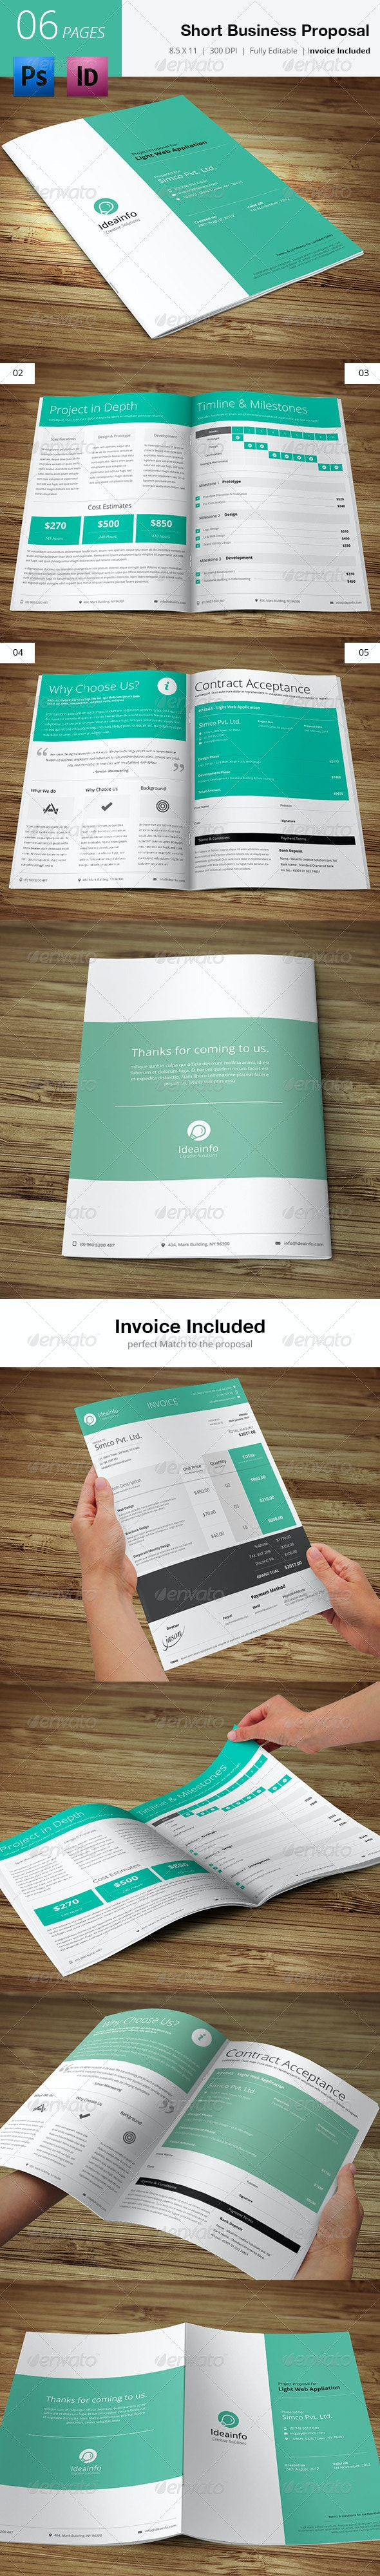 Short & Quick Business Proposal  - Proposals & Invoices Stationery